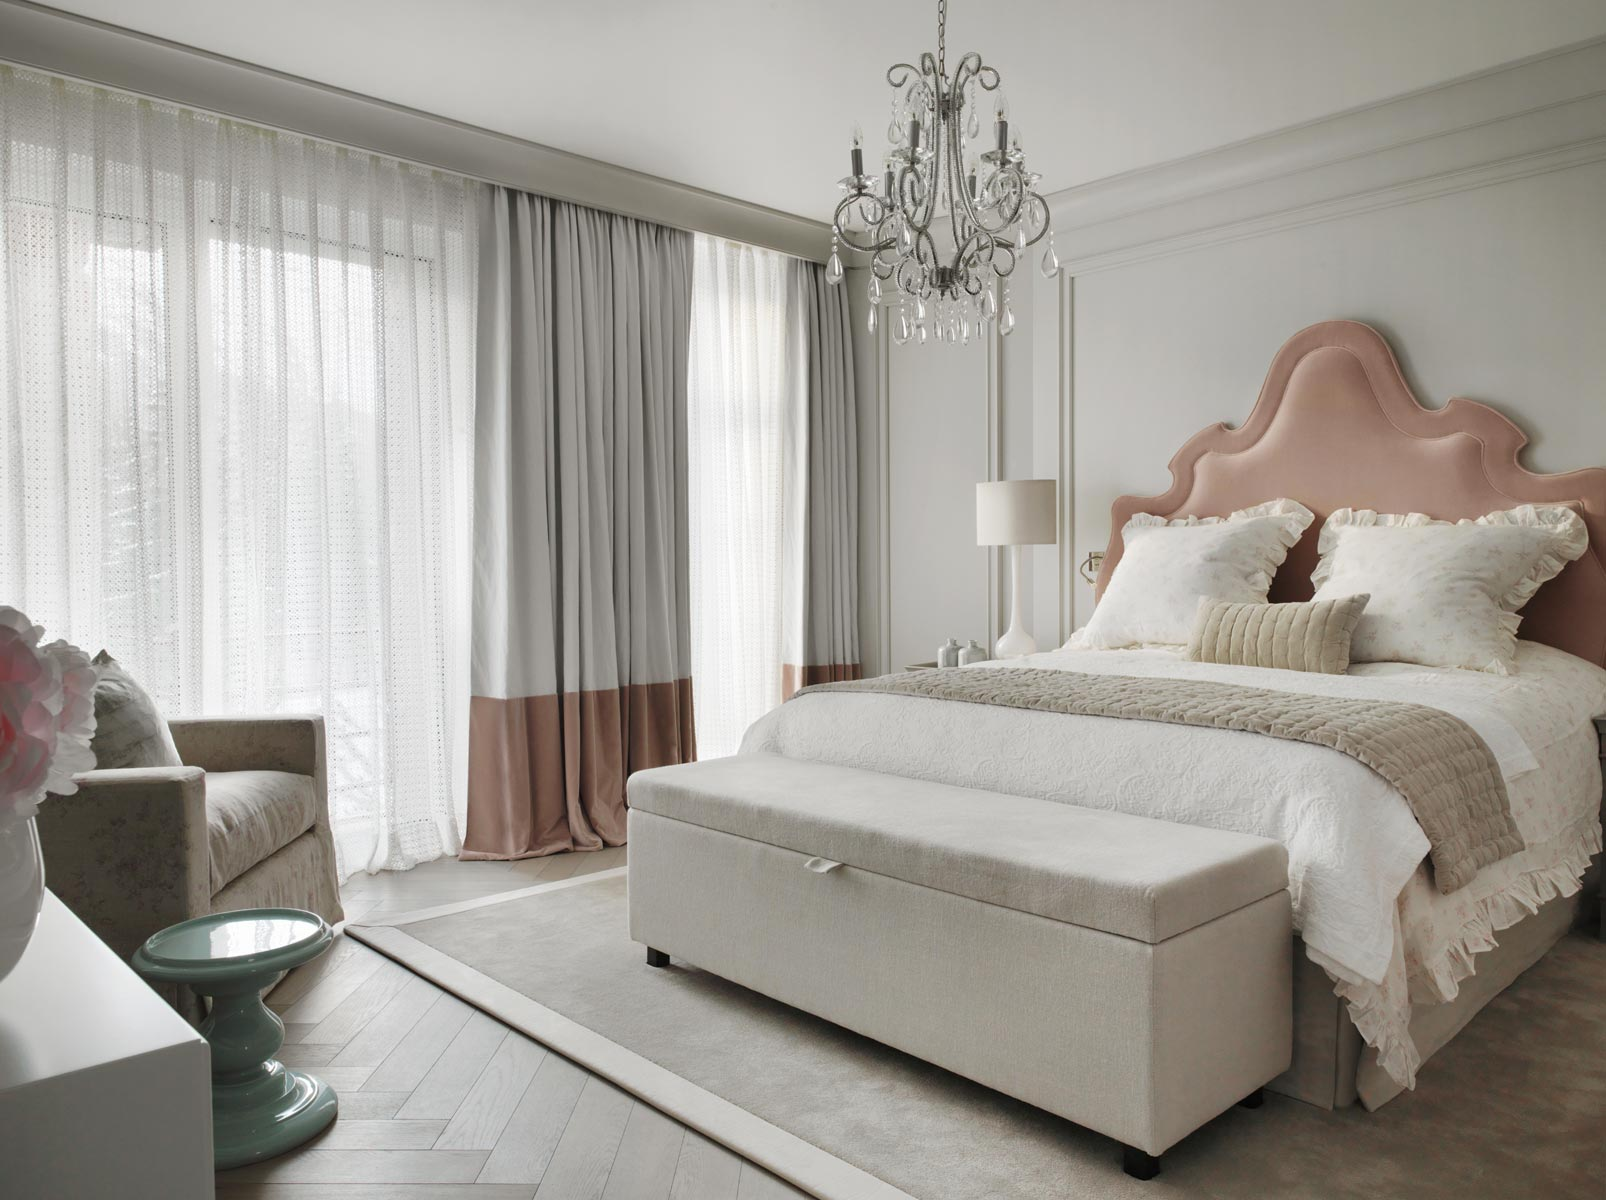 Modern Design Bedroom By Kelly Hoppen Kelly Hoppen Top 10 Kelly Hoppen Design  Ideas Chalet Switzerland3